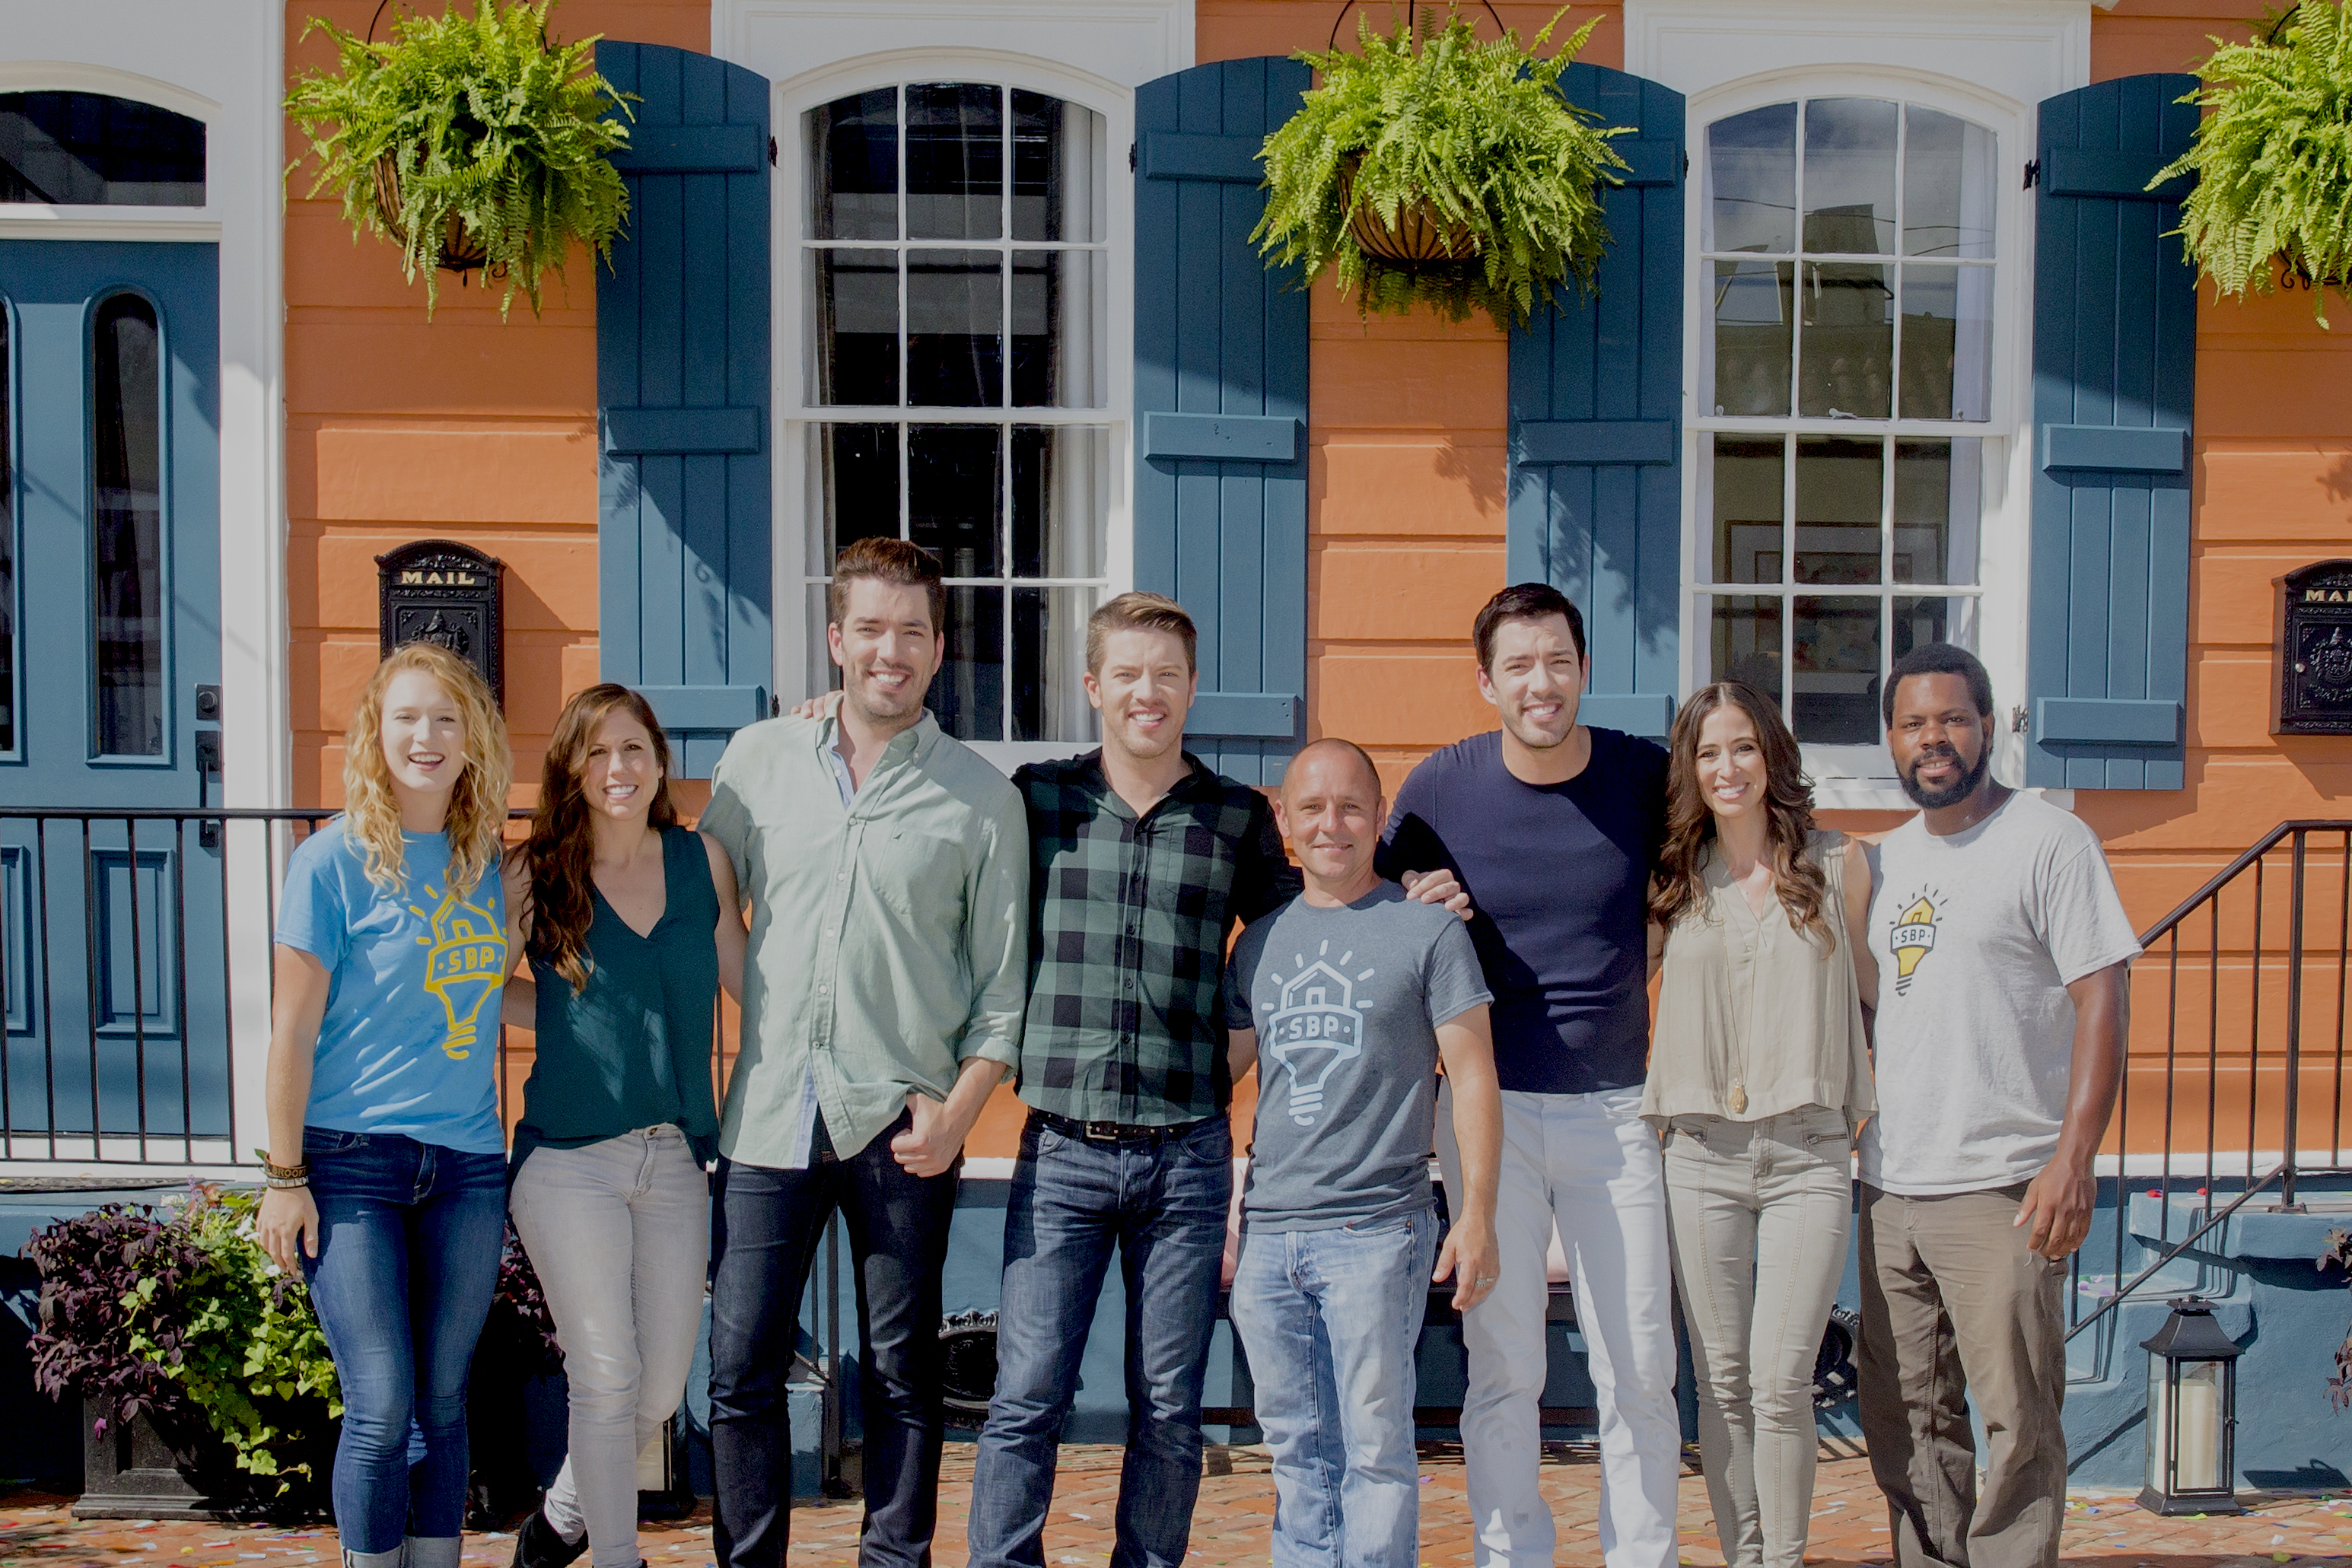 New Orleans Based Interior Designers Cast In The Property Brothers Local Show